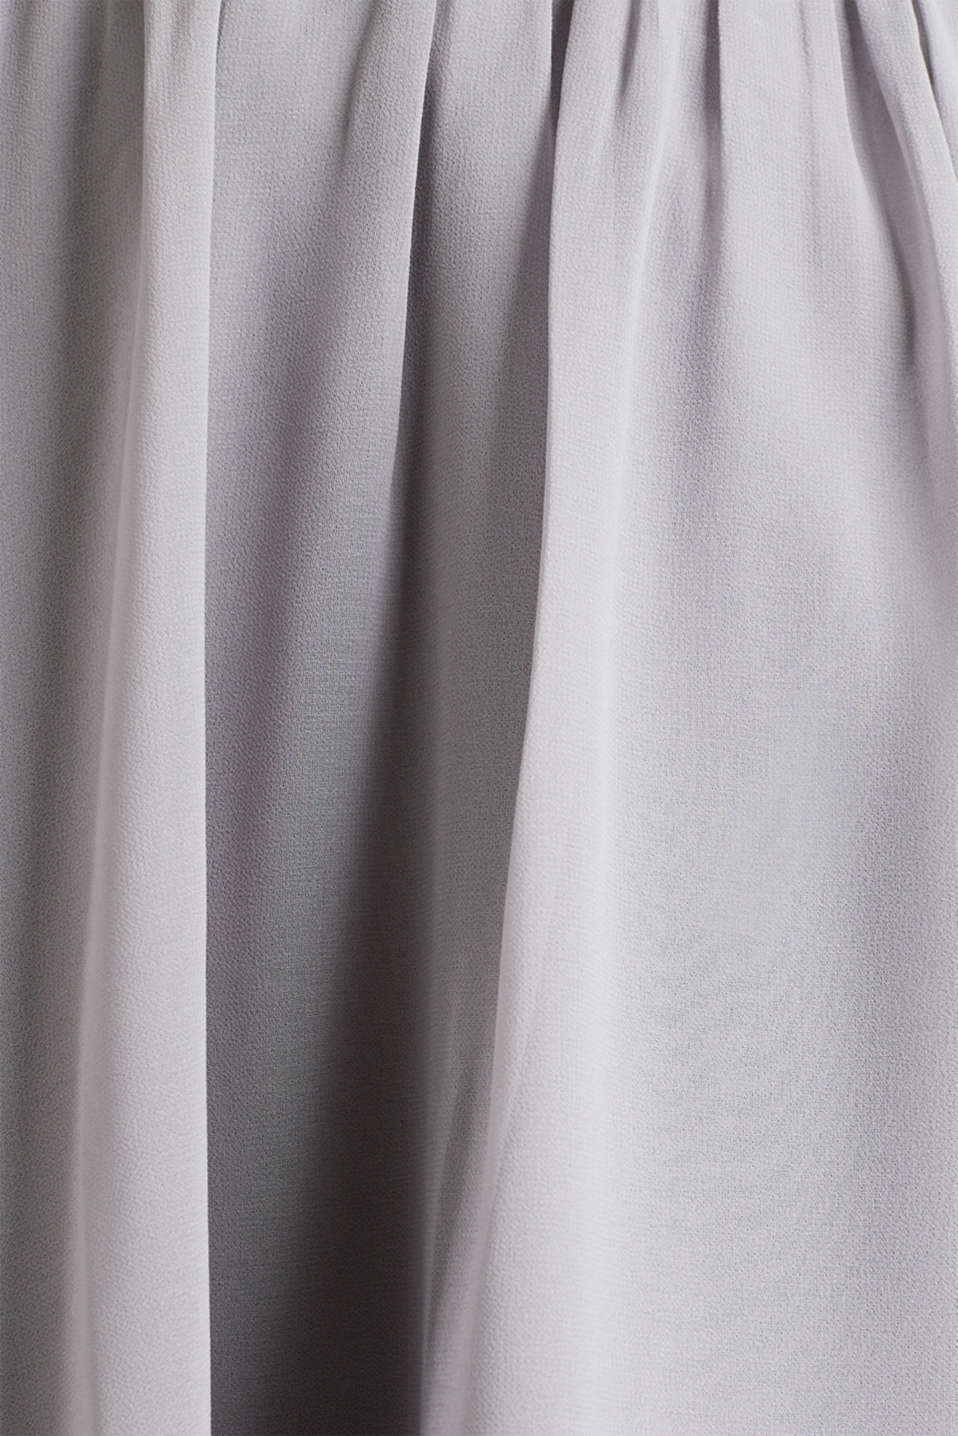 Swirling chiffon skirt, GREY, detail image number 4